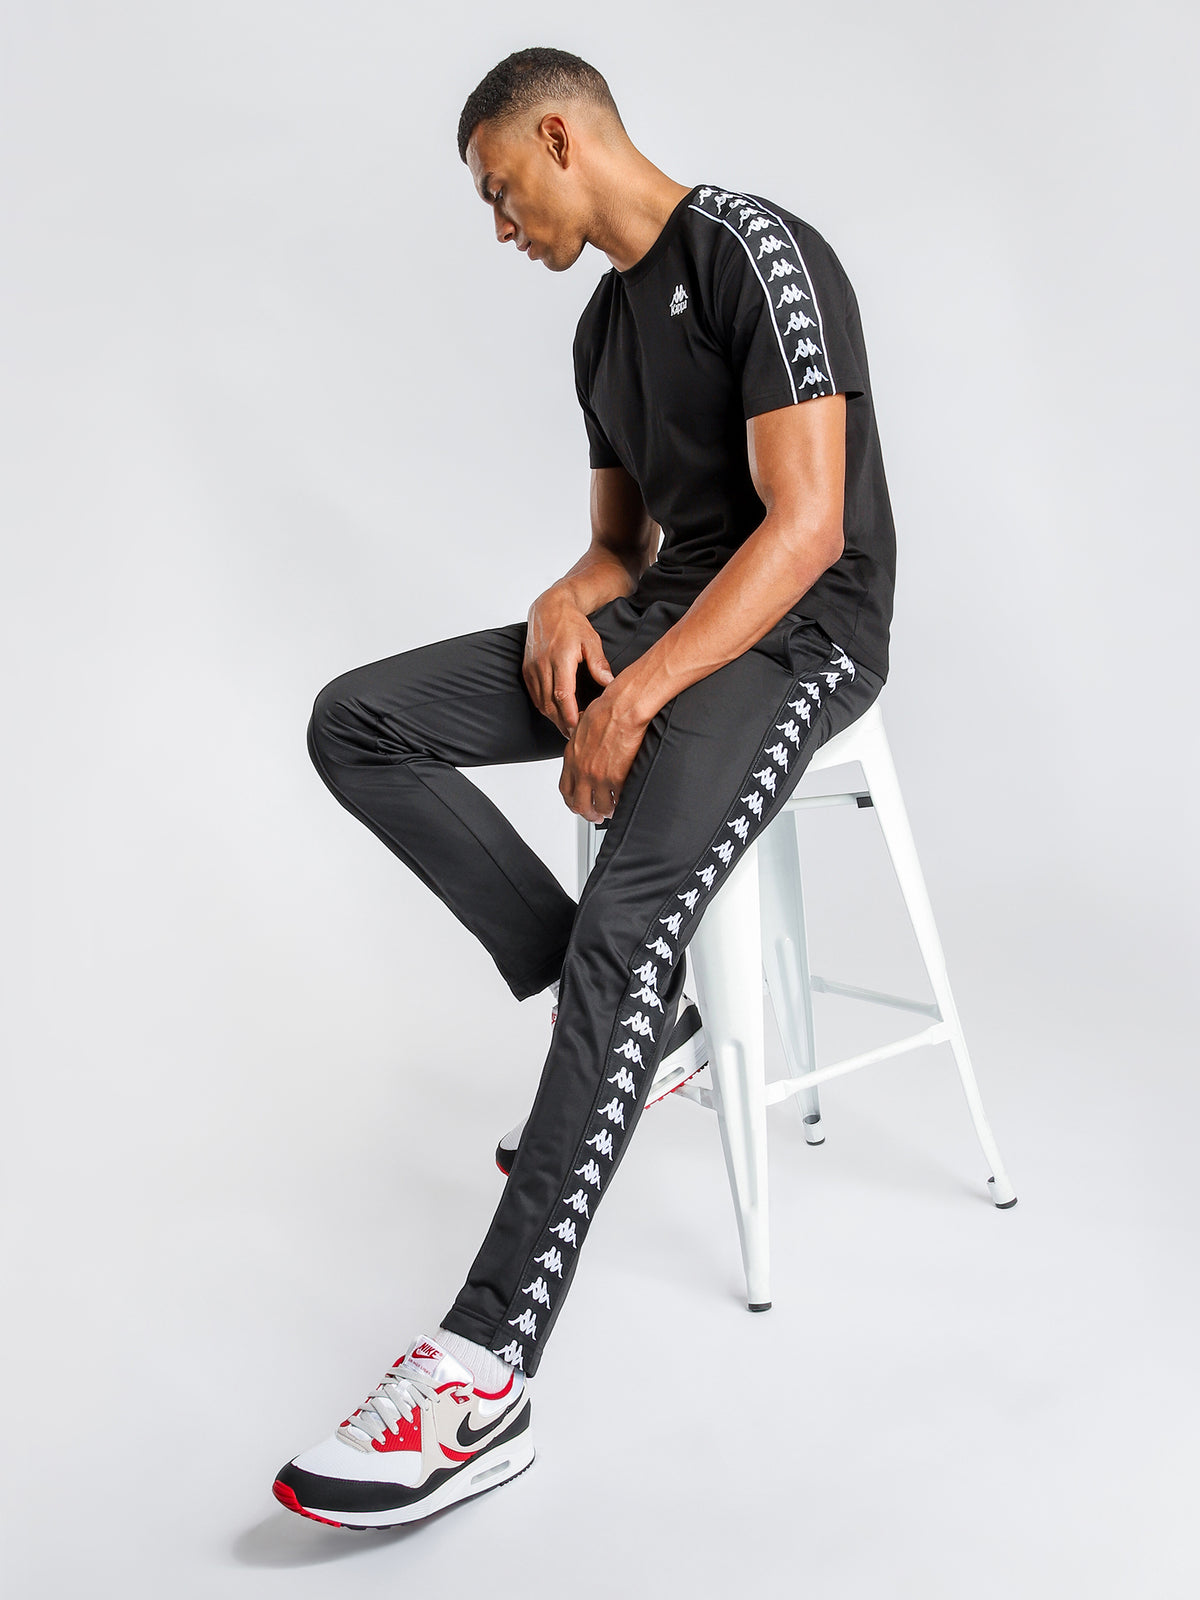 222 Banda Astoria Slim Track Pants in Black